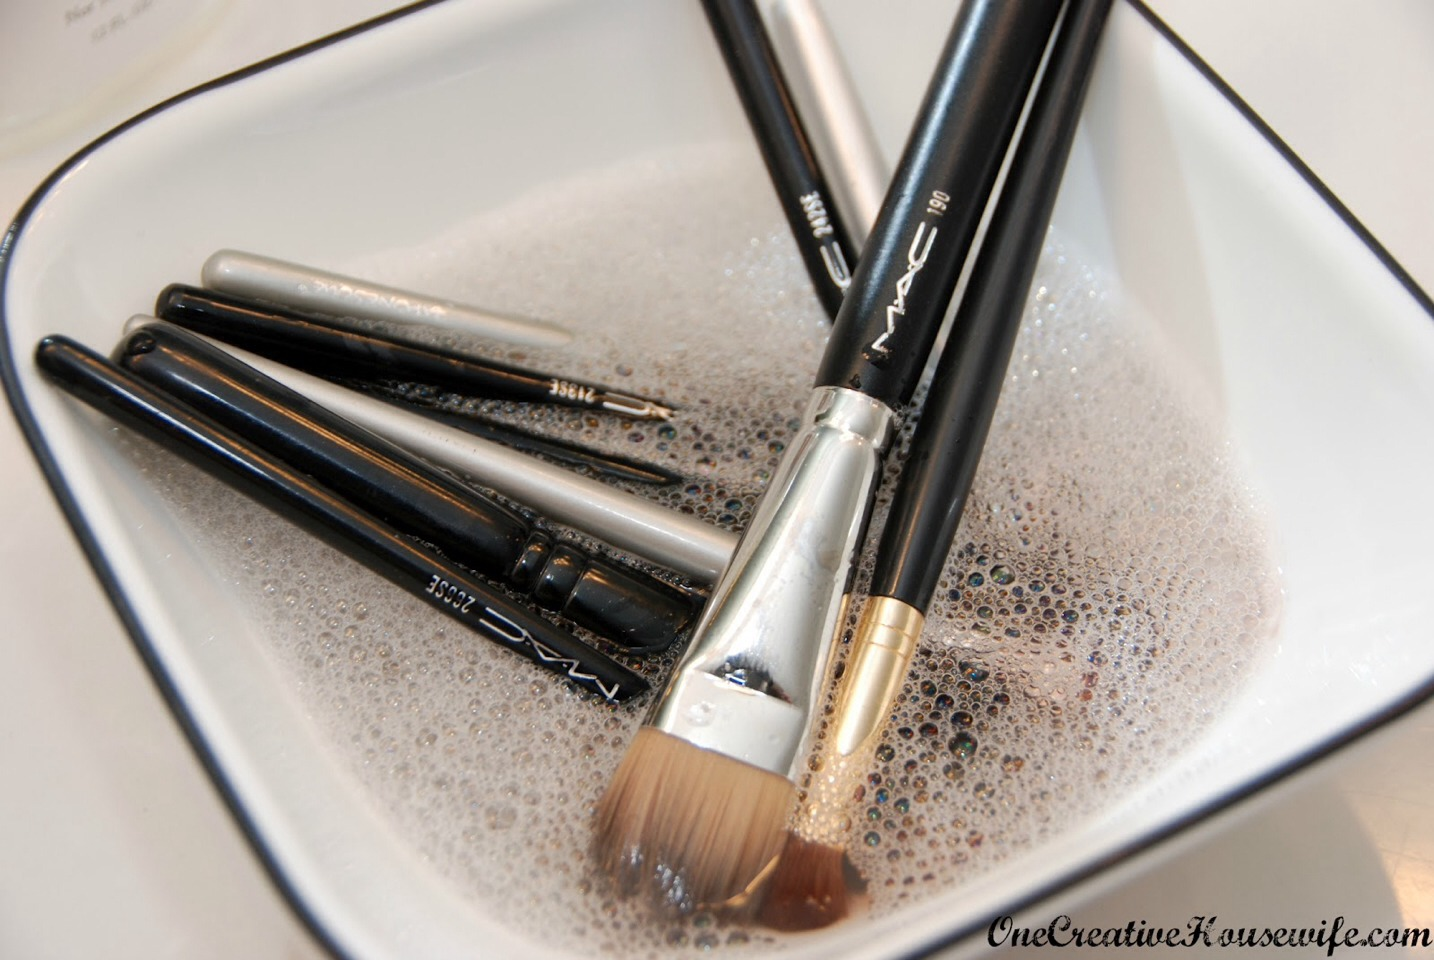 Remember, clean brushes to fight against potential bacteria and breakouts!